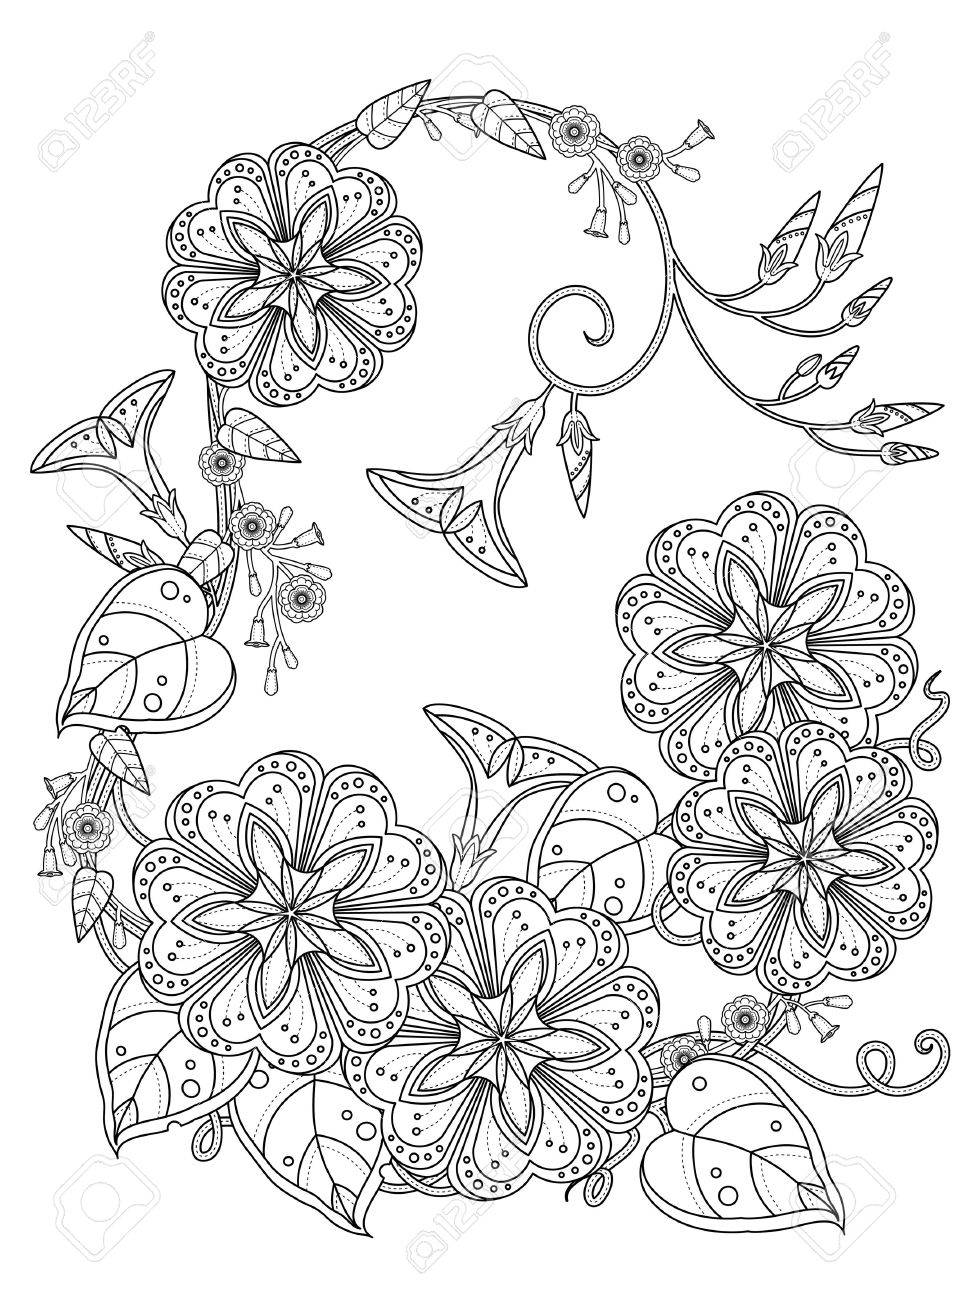 elegant morning glory coloring page in exquisite line stock vector 51592141